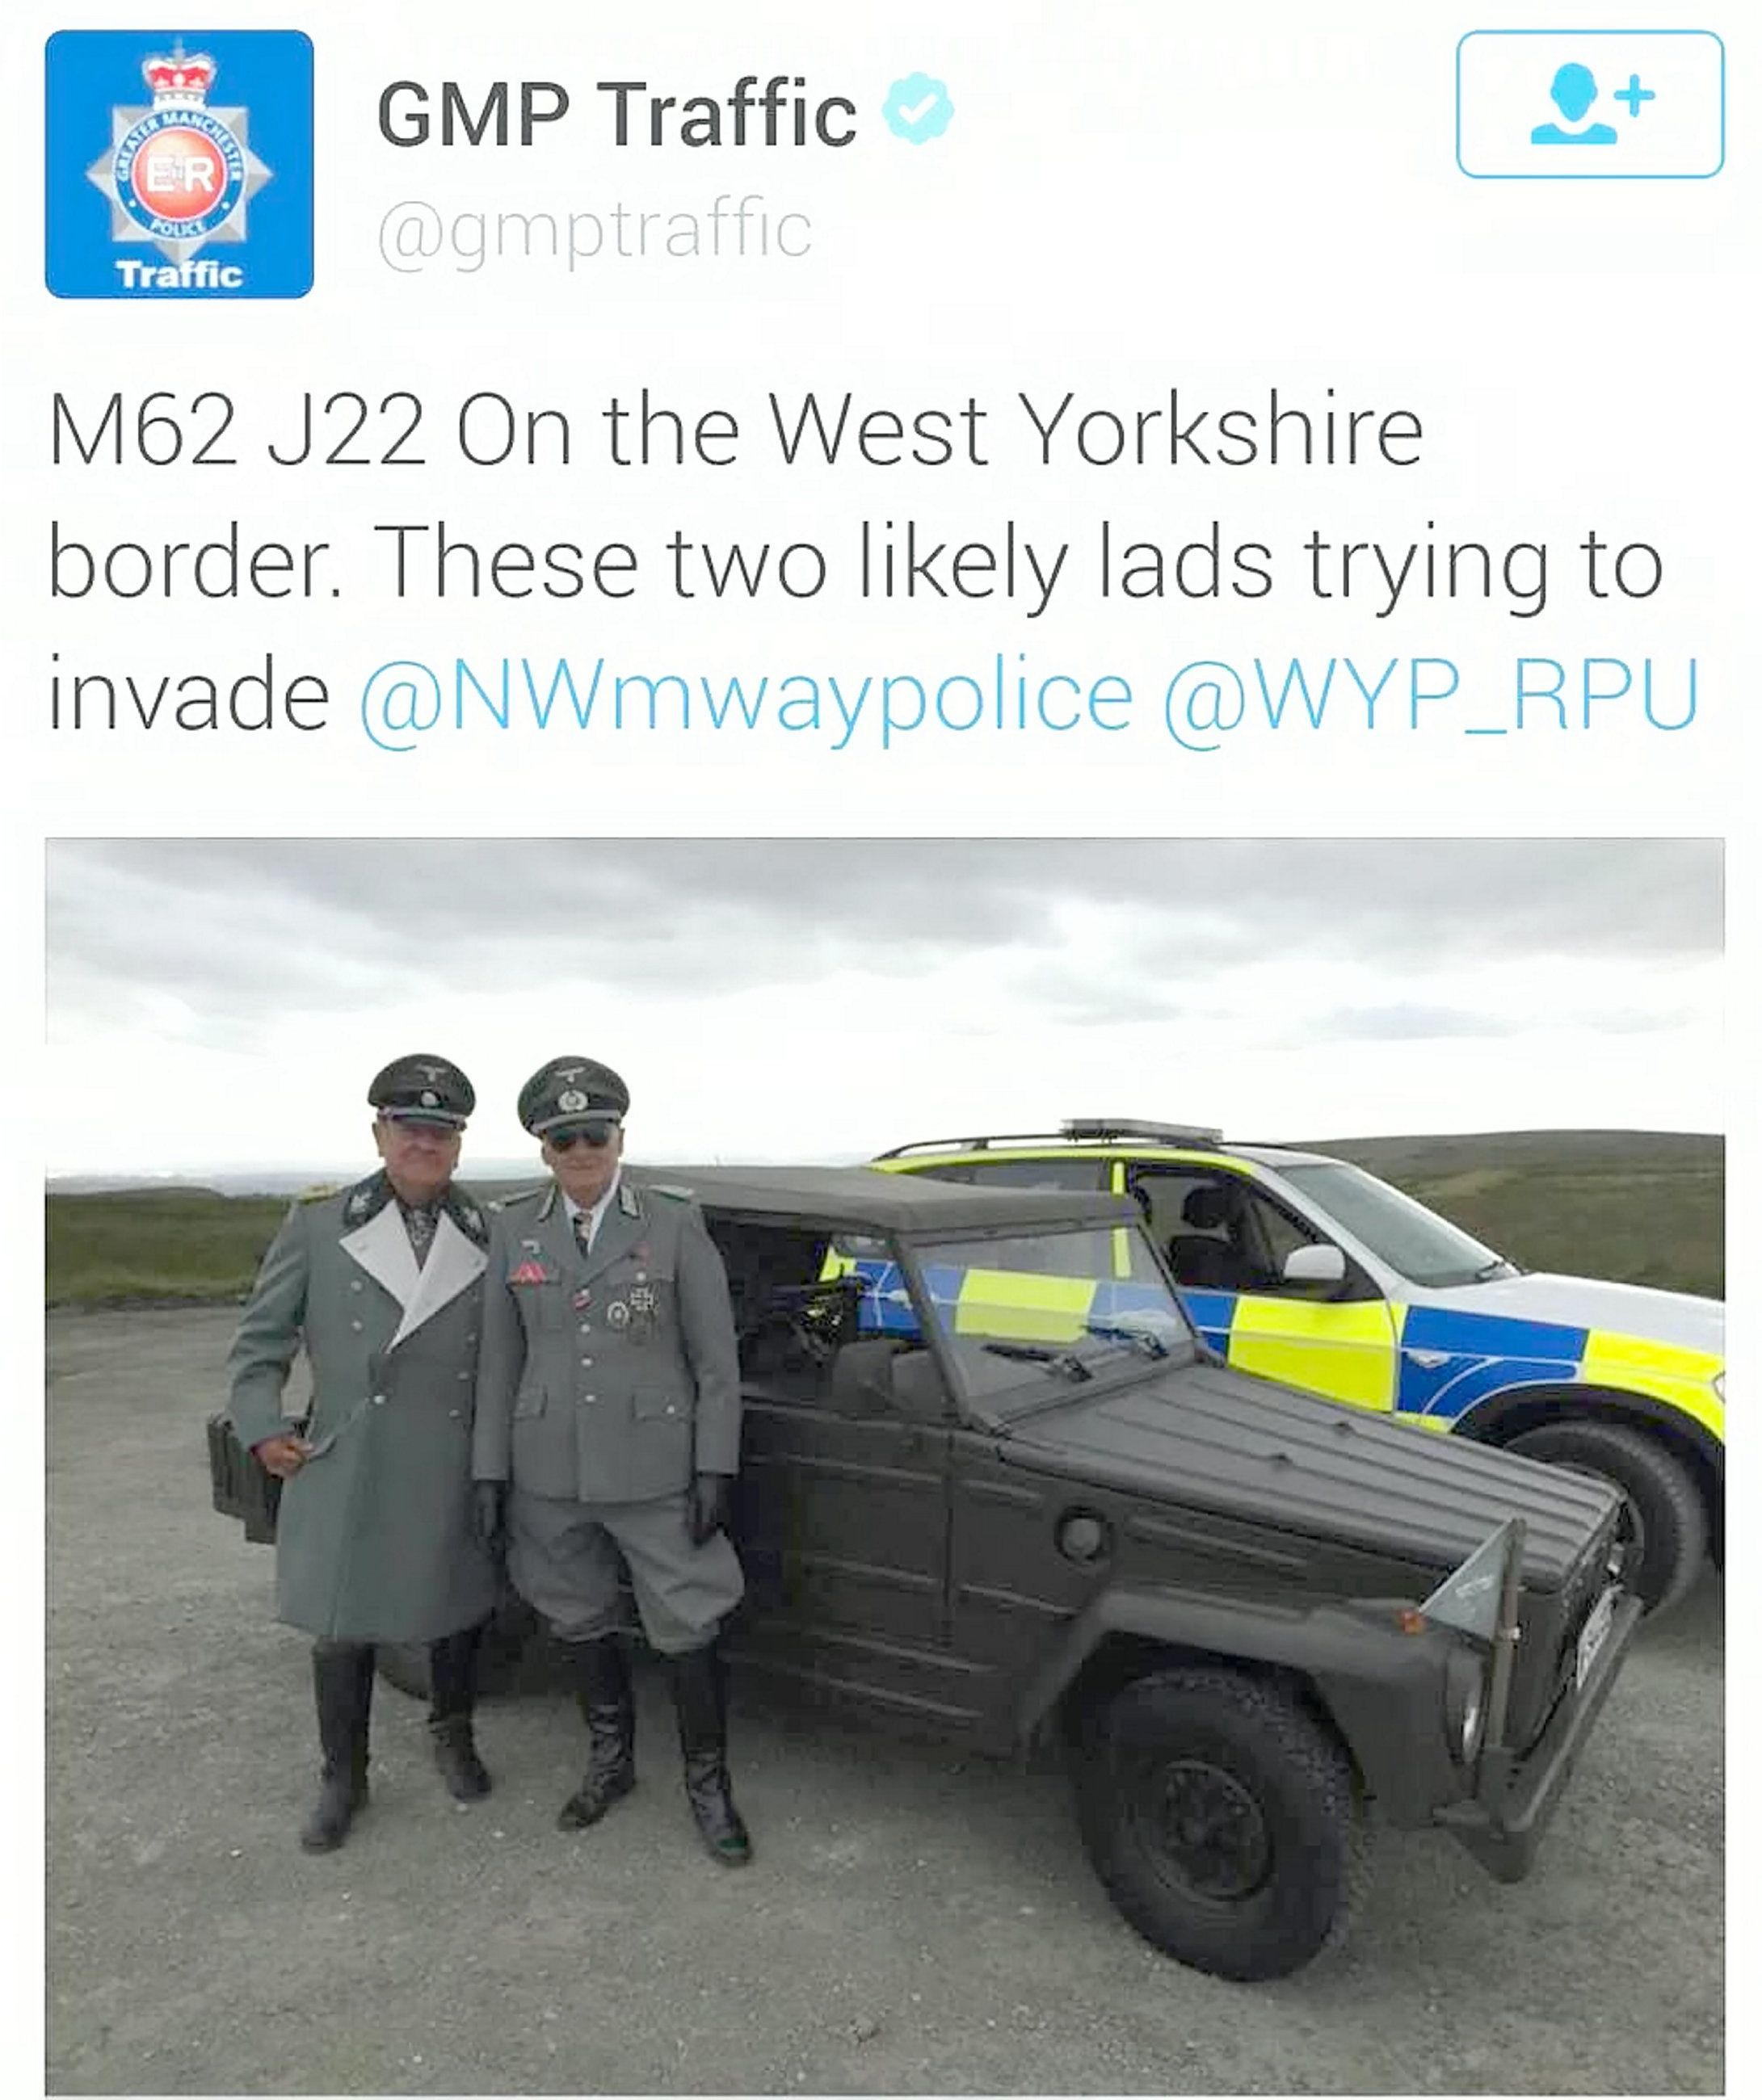 Greater Manchester Police's traffic unit sparked outrage after tweeting this image of two men dressed...